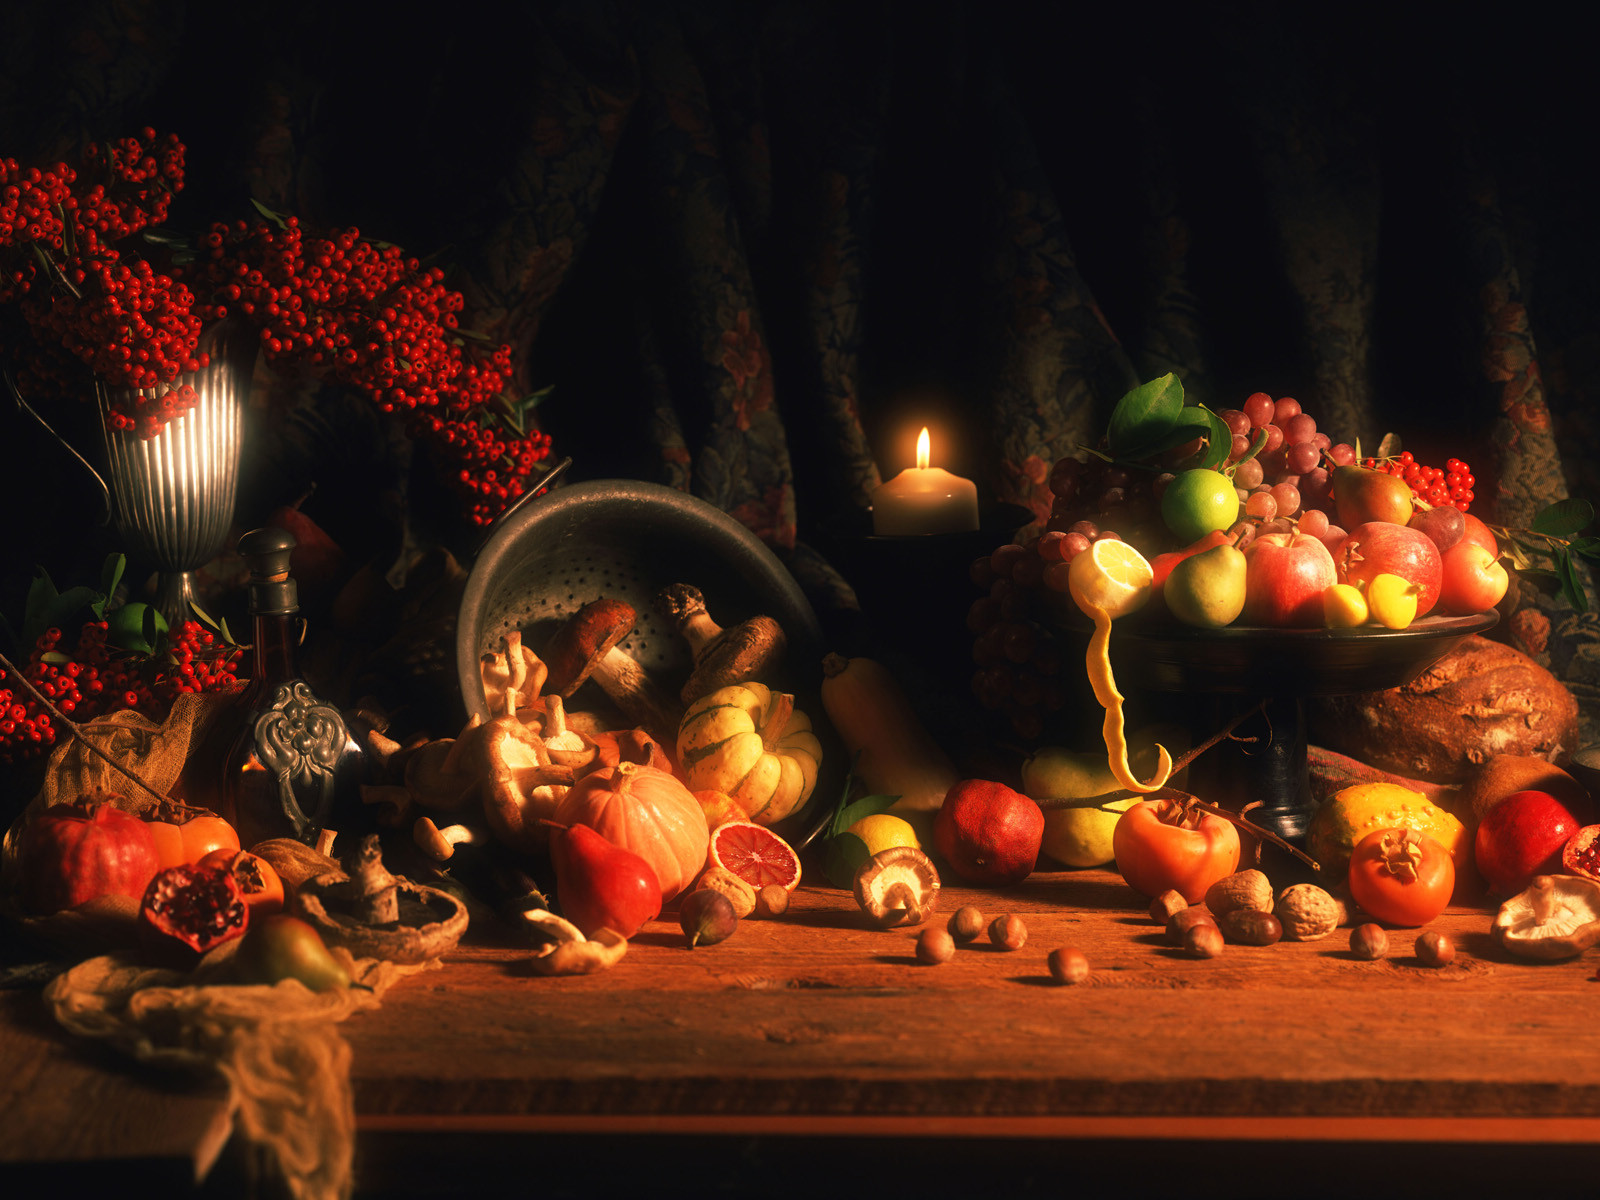 happy thanksgivinghd wallpapers - photo #22